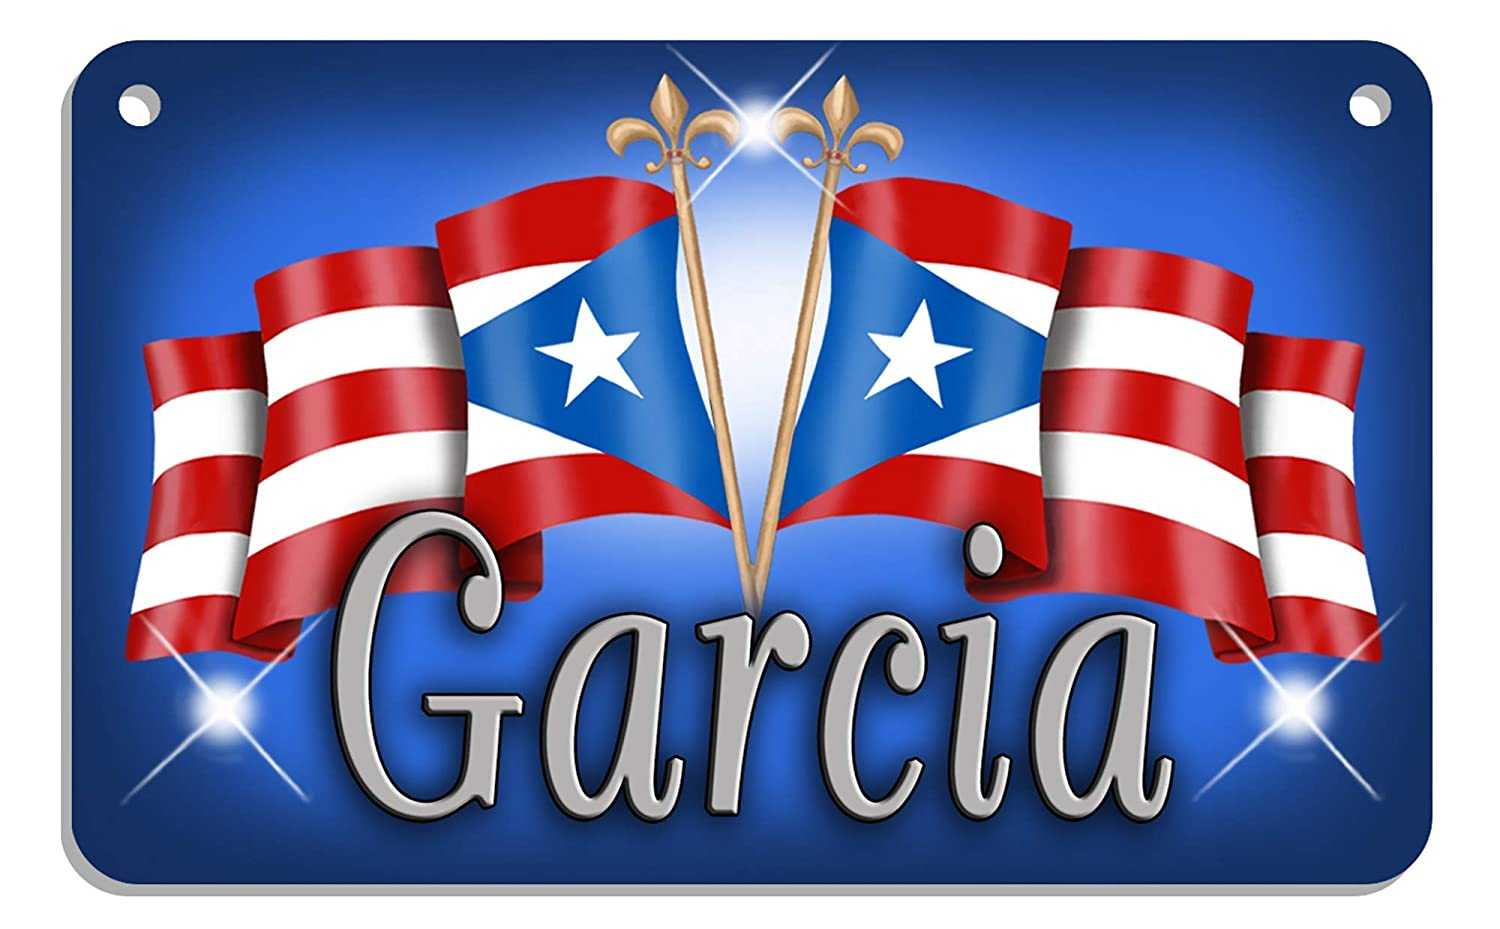 Puerto Rico Flags Bicycle Metal License Plate Personalize Gifts 2.75 in x 4.5 in